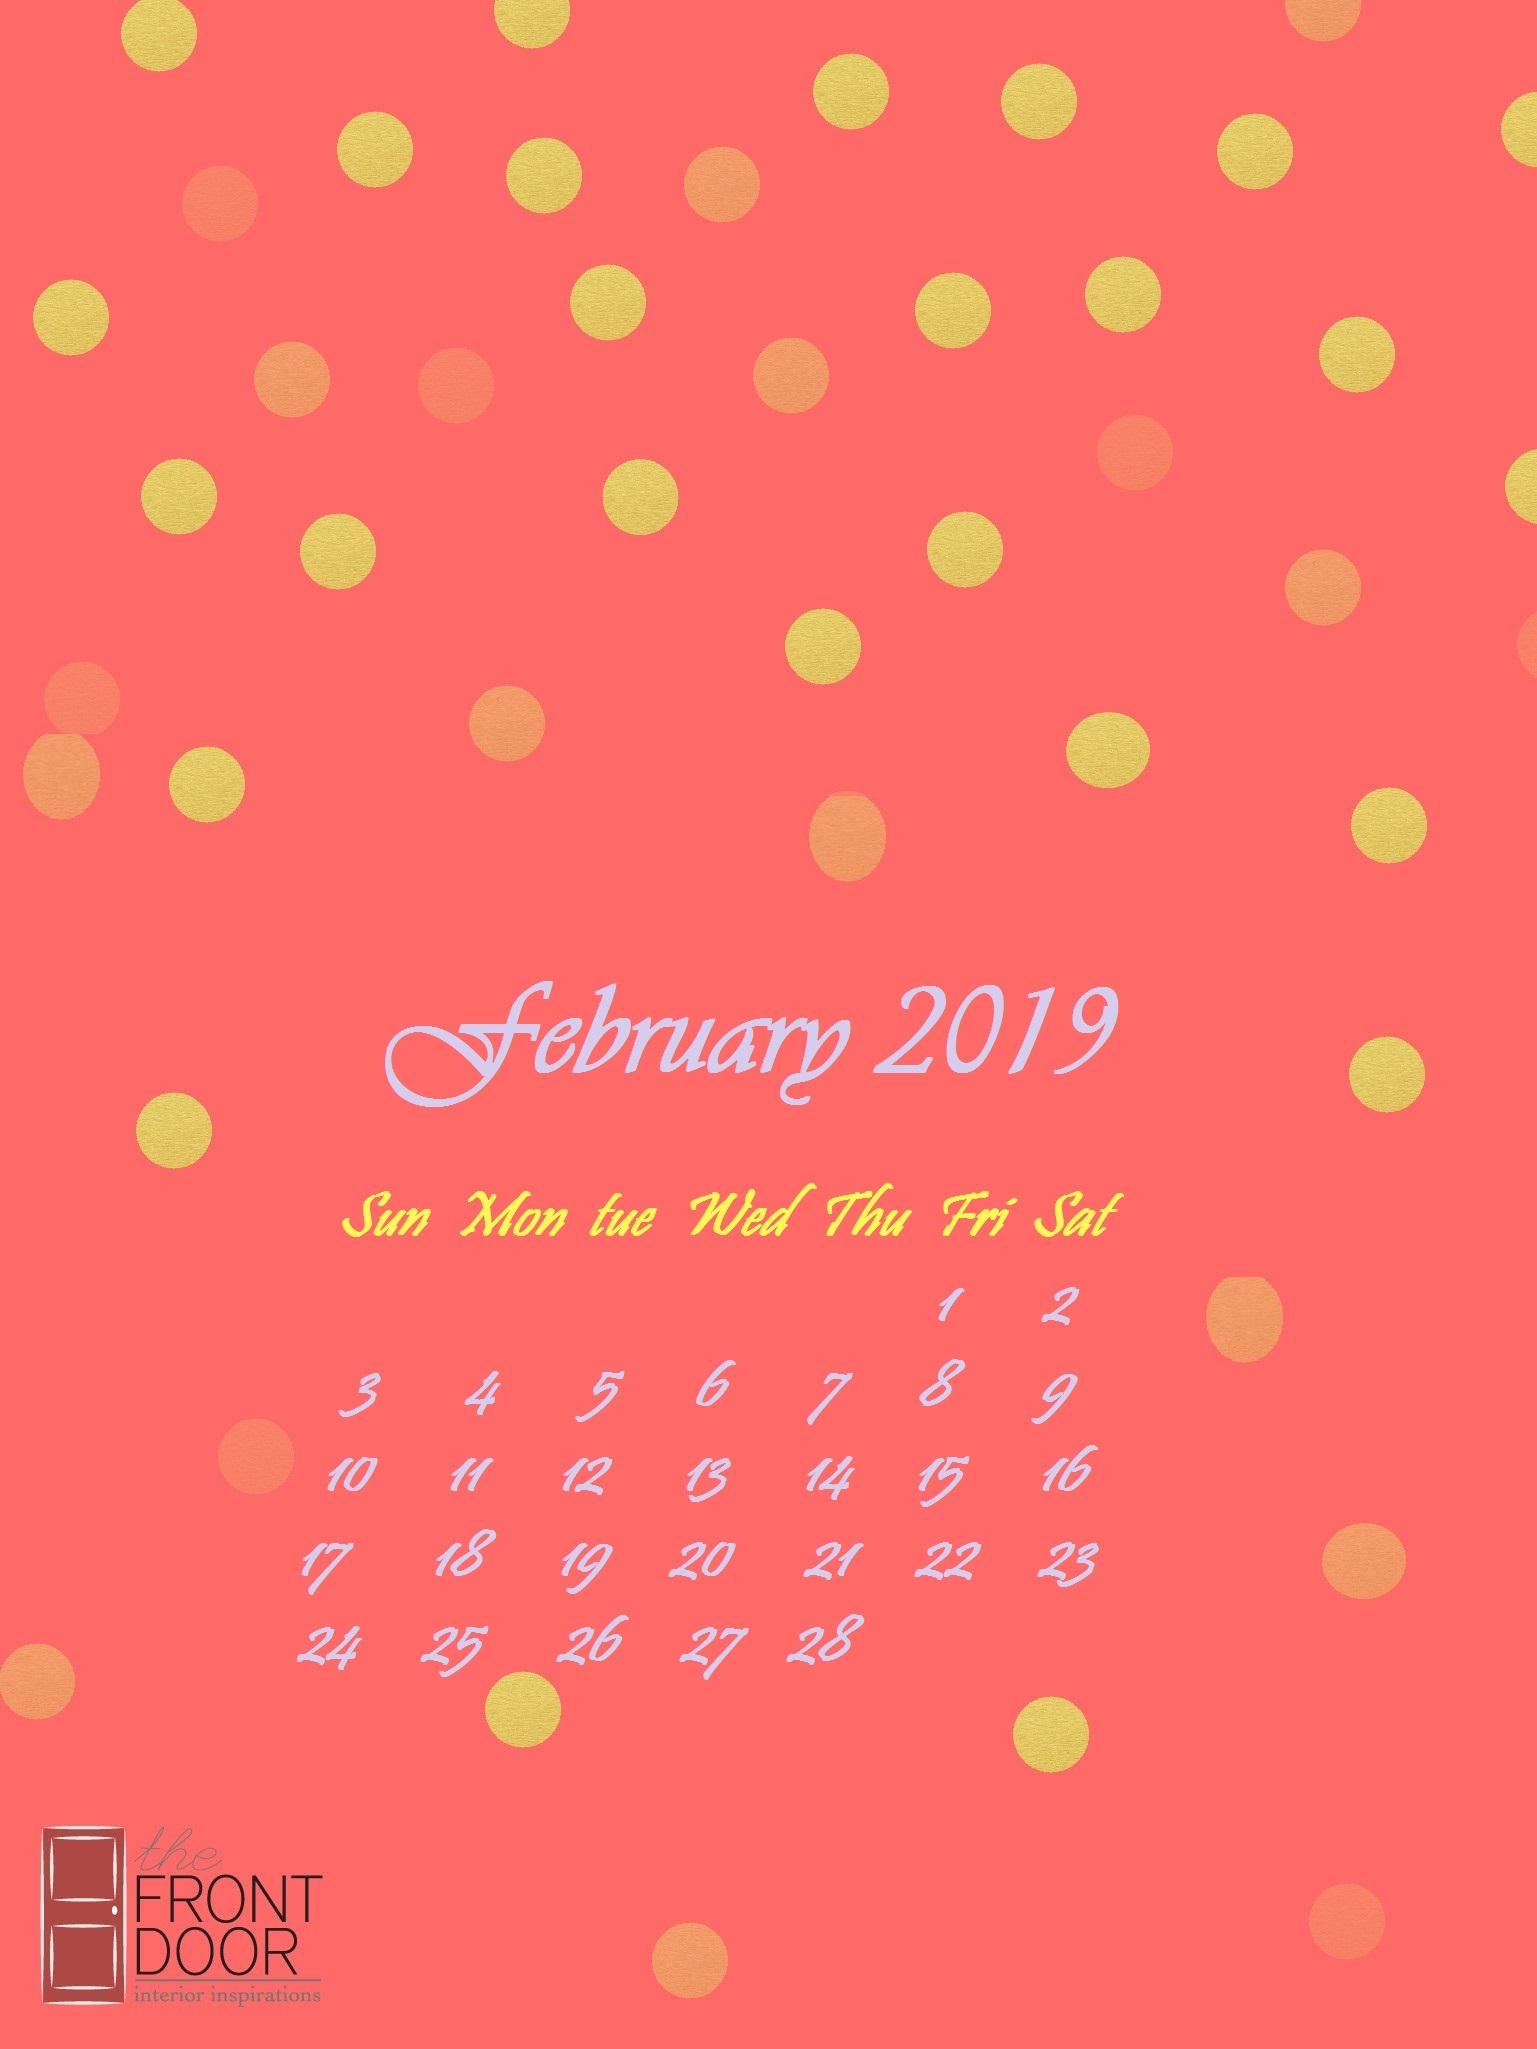 february 2019 iphone calendar wallpaper calendar 2019::February 2019 iPhone Calendar Wallpaper